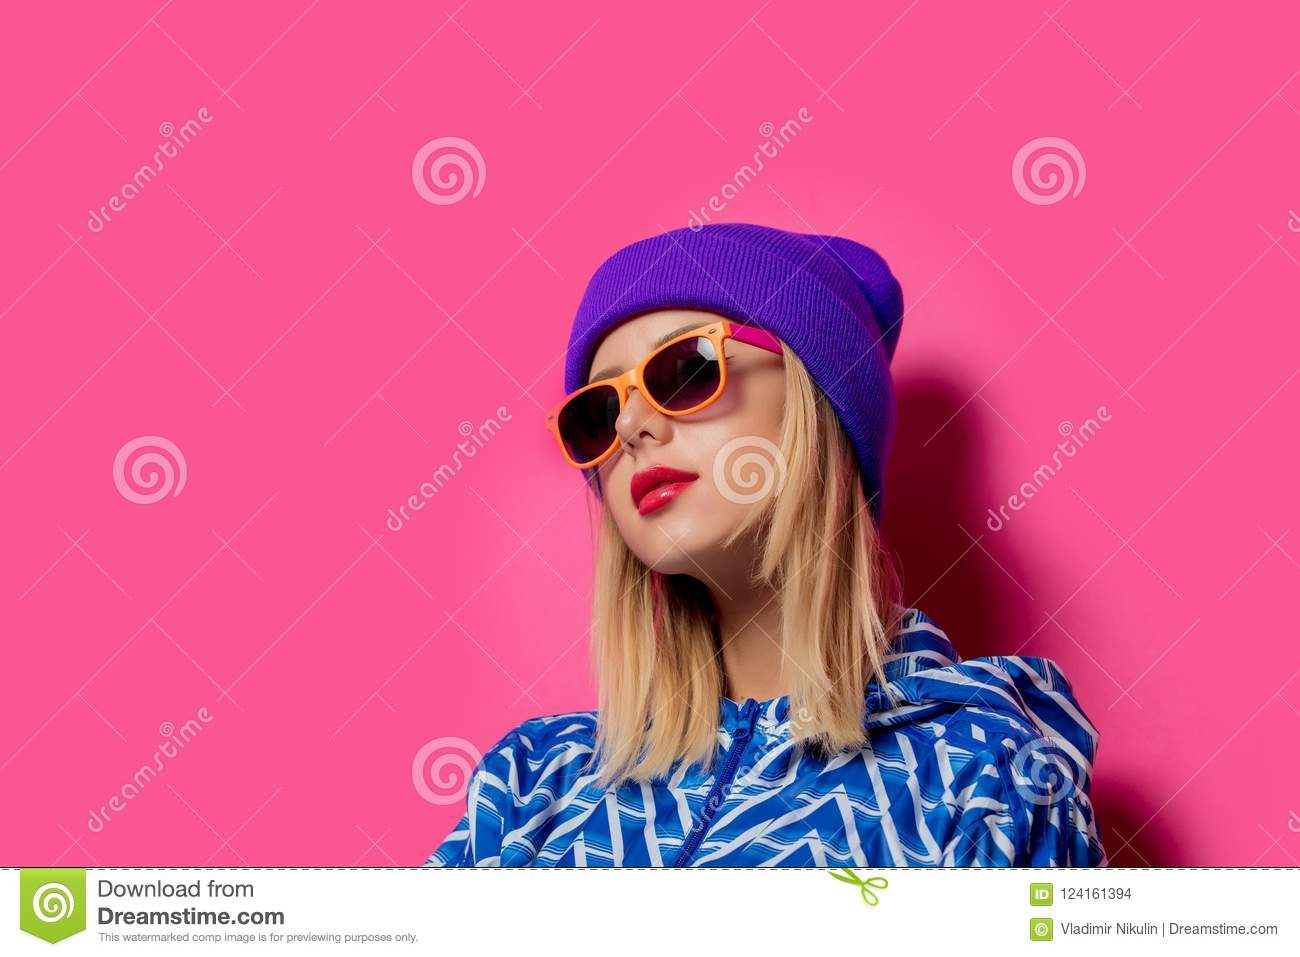 Girl in 90s sports jacket and hat with sunglasses